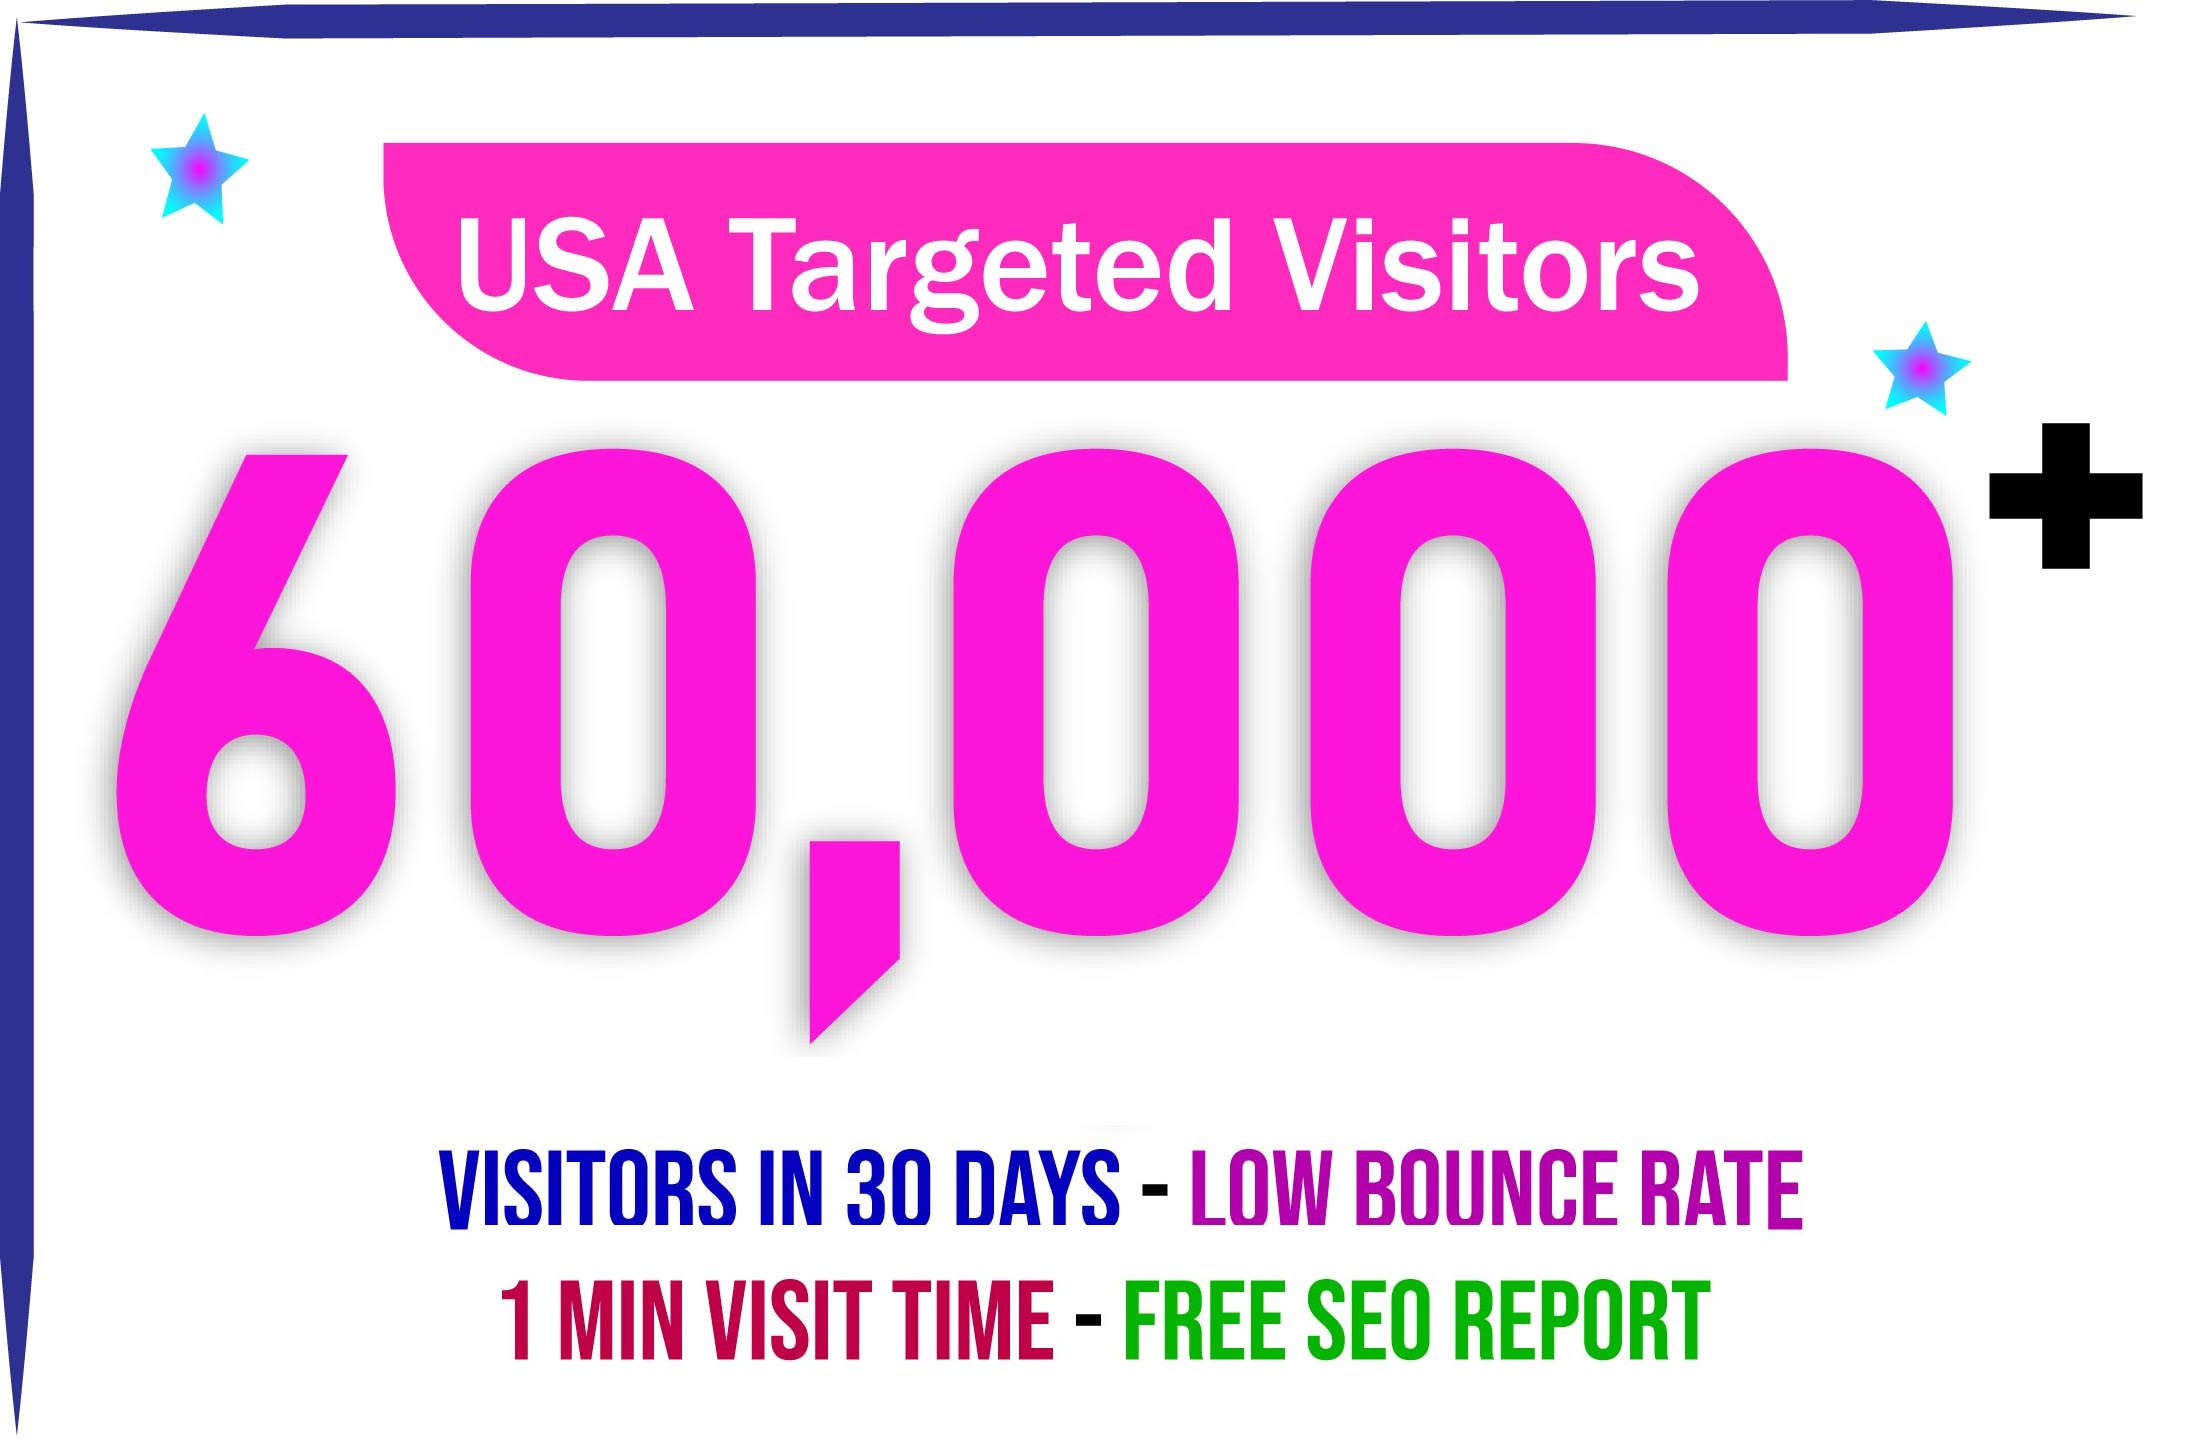 60,000 USA/CANADA daily visitors for daily nonstop web traffic